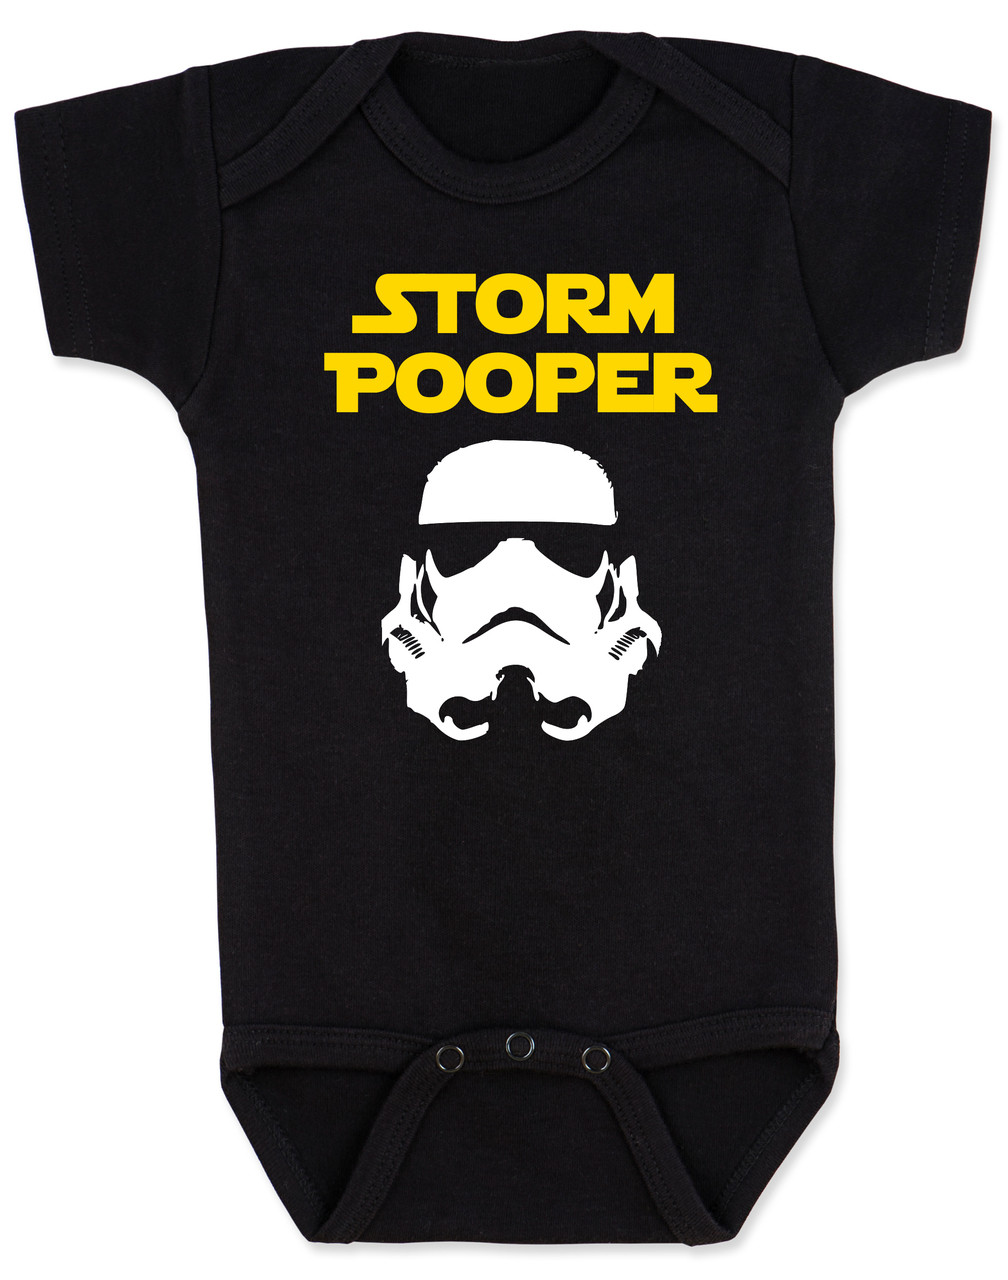 Lucky Star Storm Pooper Body The Dark Side Funny Nerdy May Force